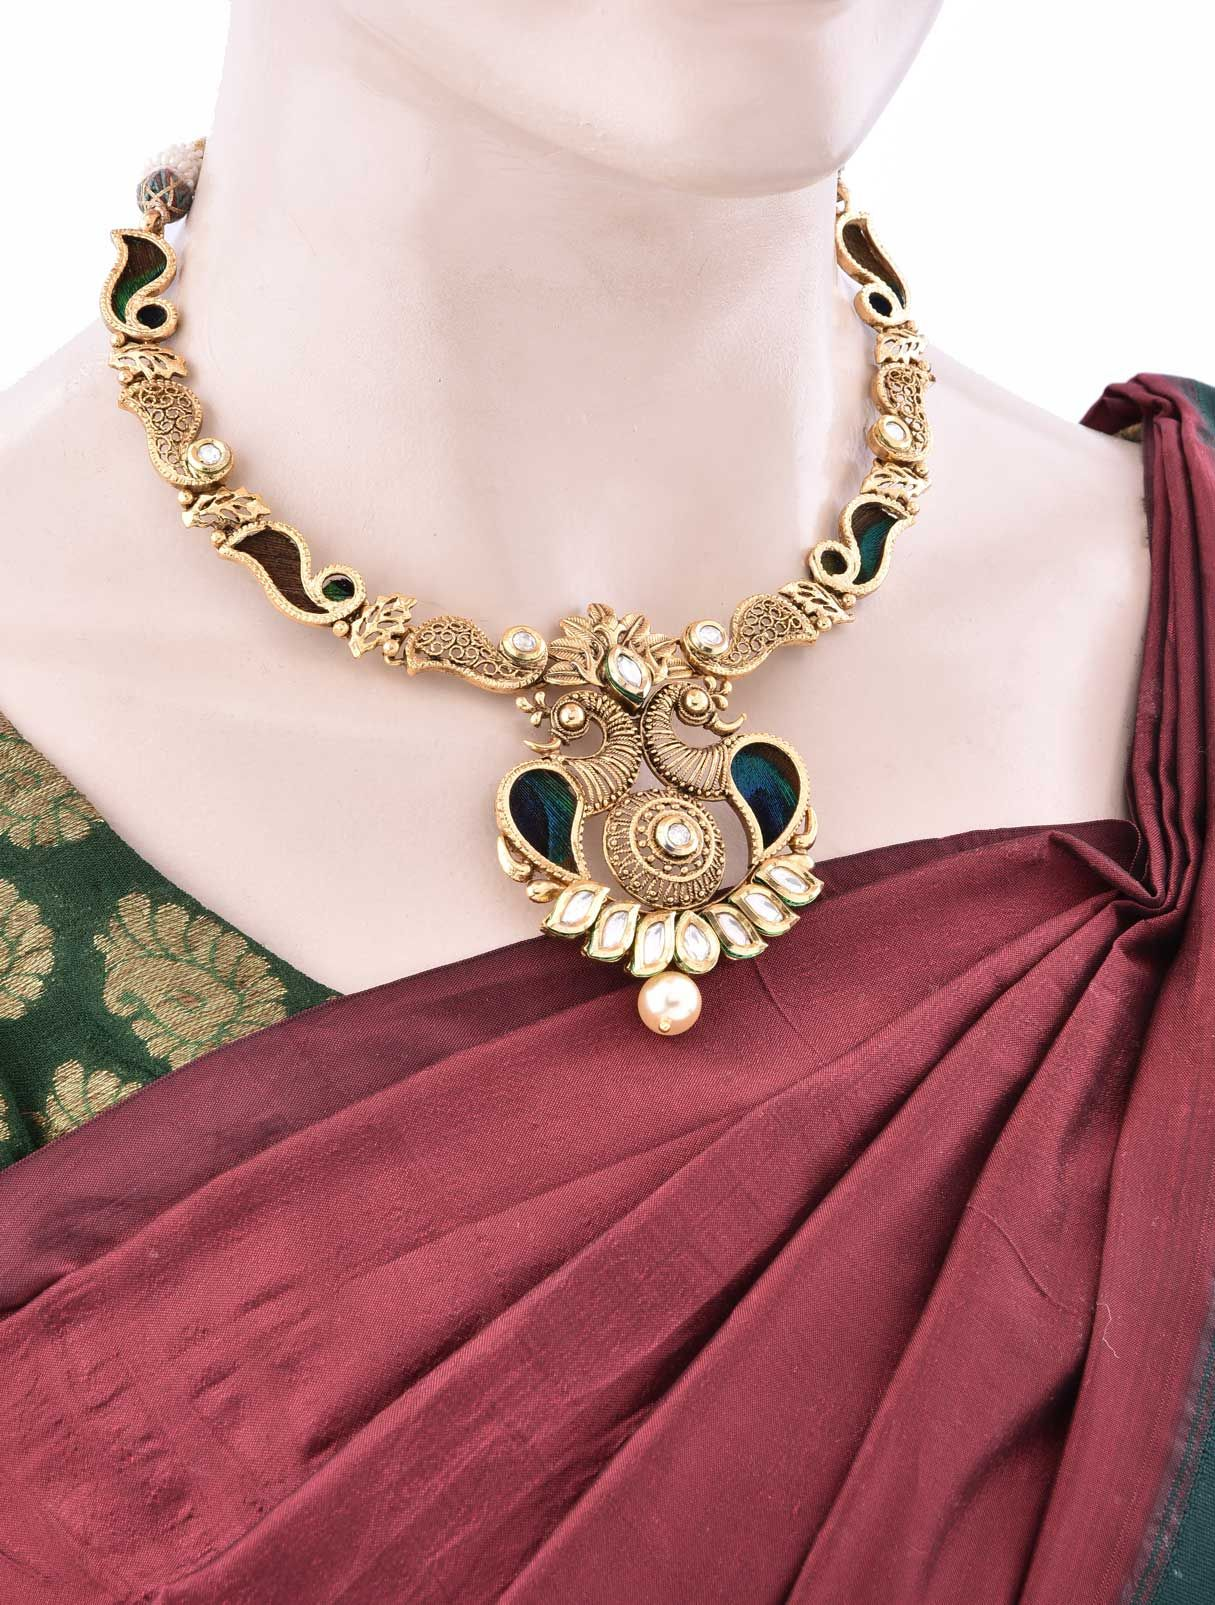 Jewlry Necklace Set with Antique Peacock Design